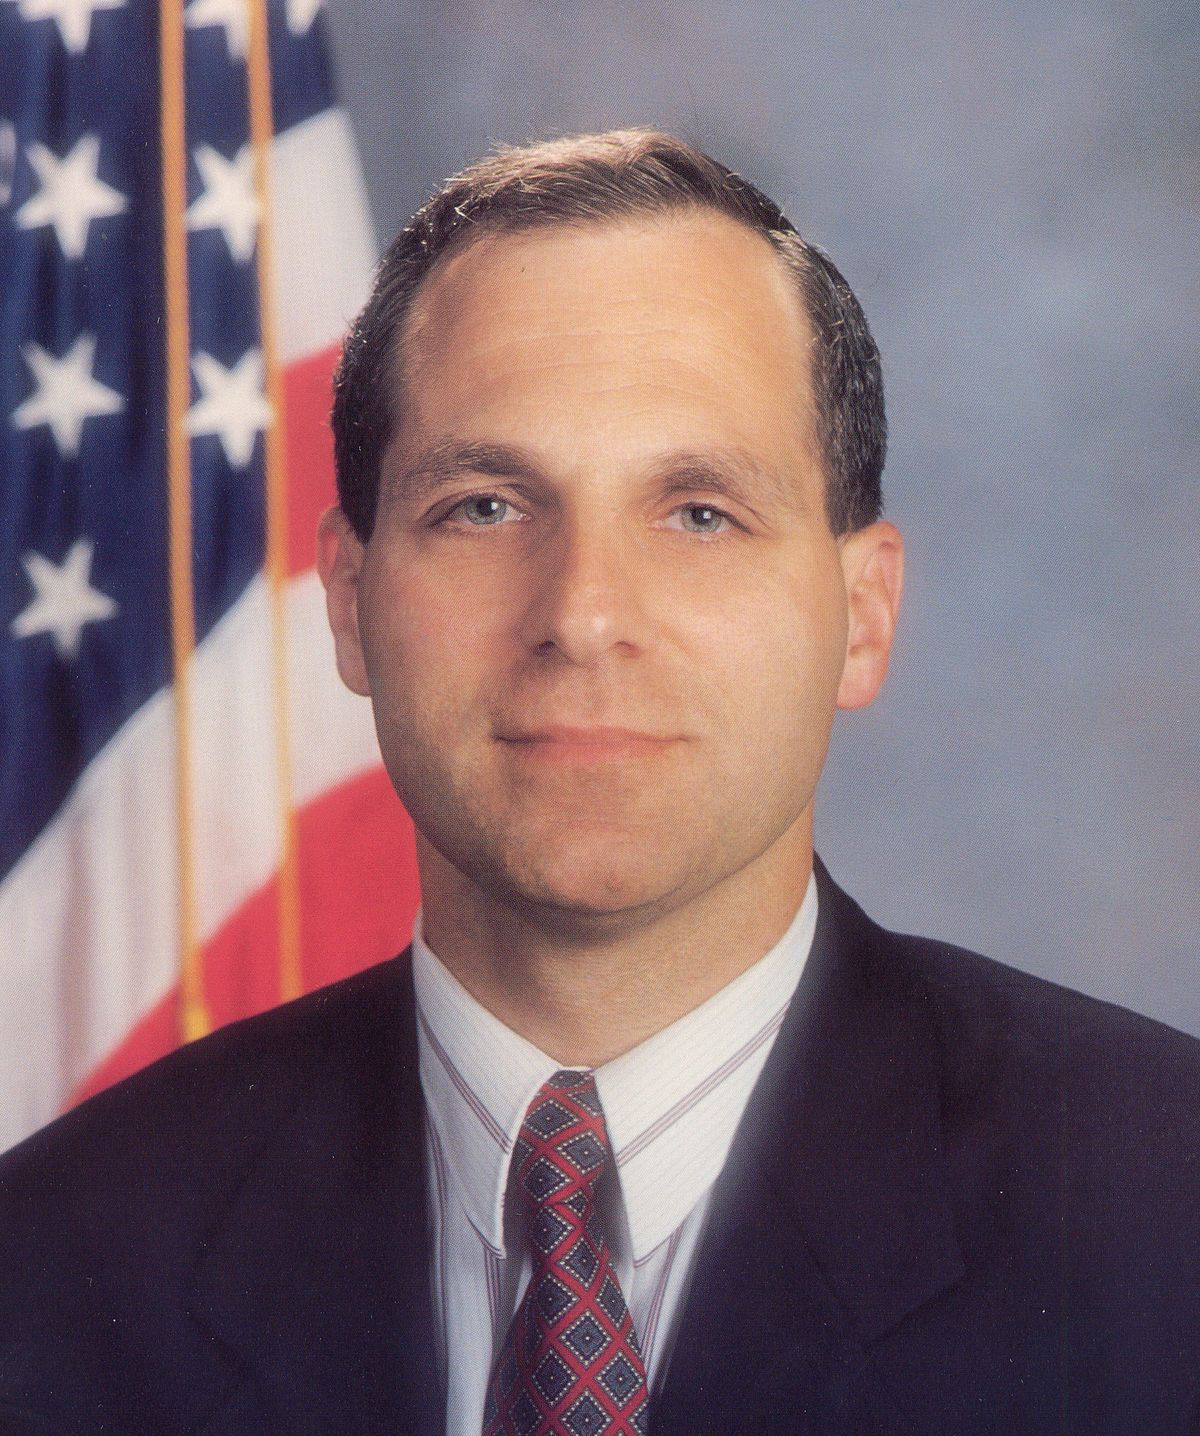 Louis Joseph Freeh B 1/6/1950 is an American attorney